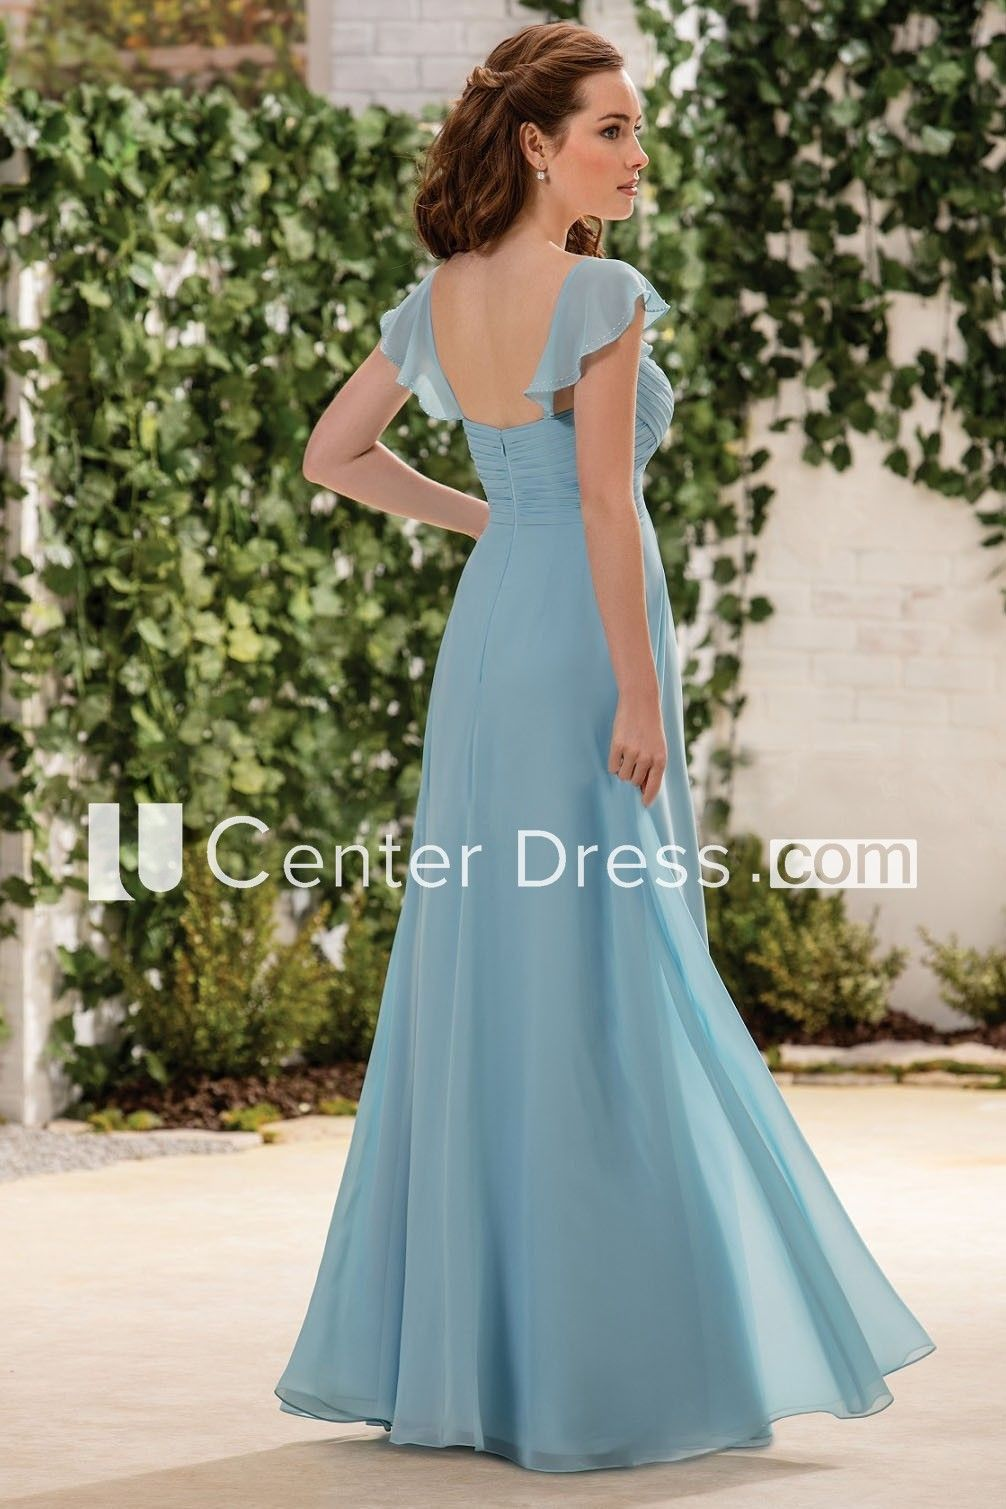 Cap-Sleeved A-Line Bridesmaid Dress With Crisscross Ruching And ...